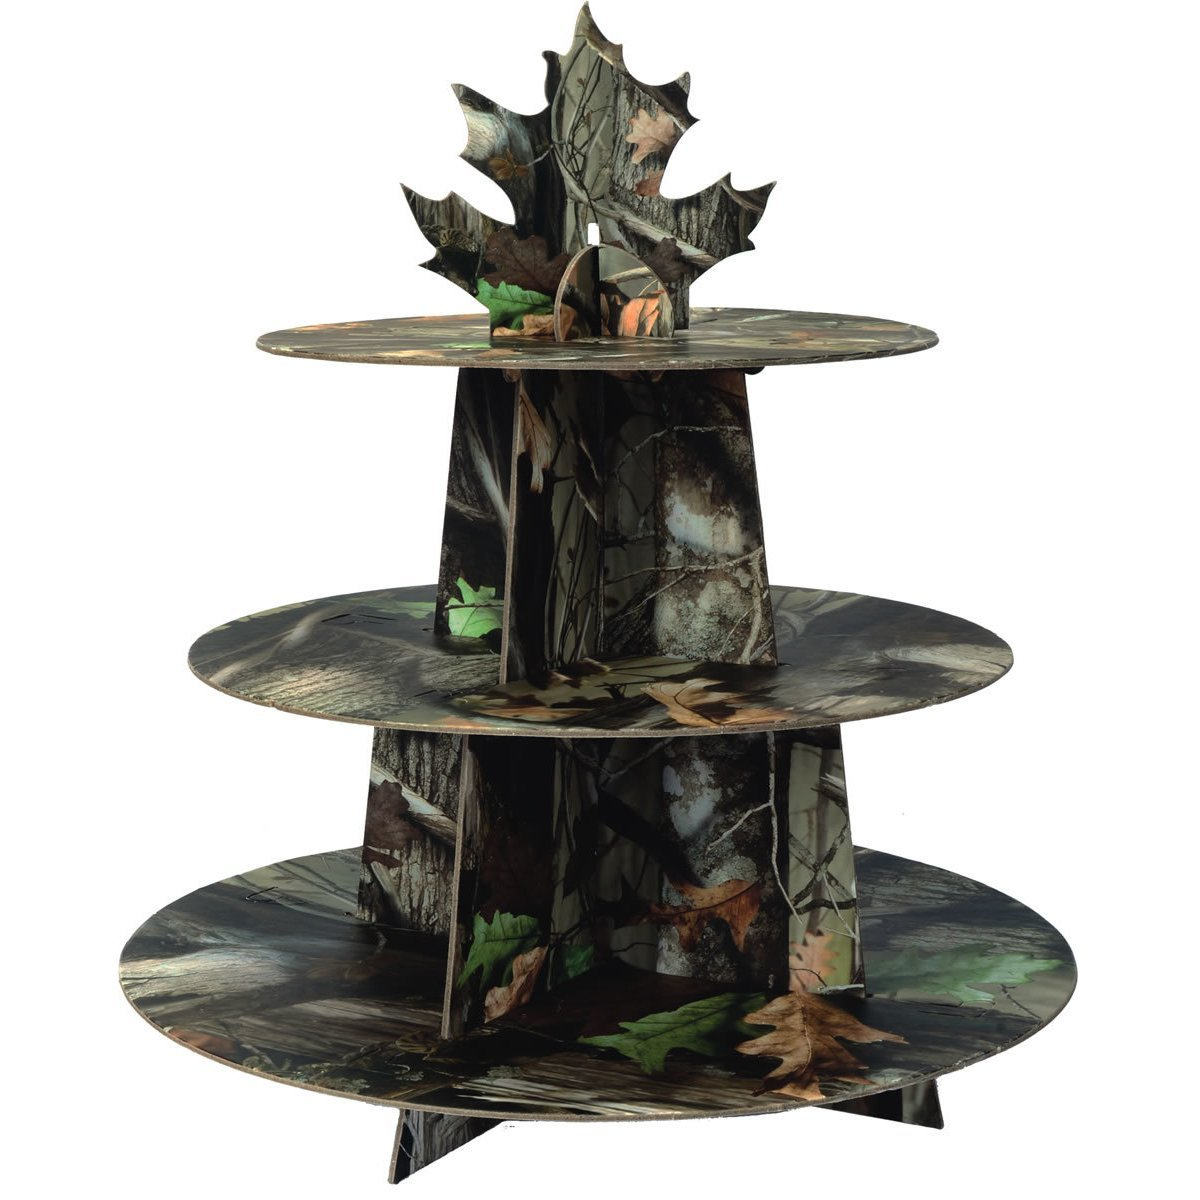 1 X Next Camo Cupcake Stand Camouflage Party Supply, 1 Cupcake Holder per package By Havercamp